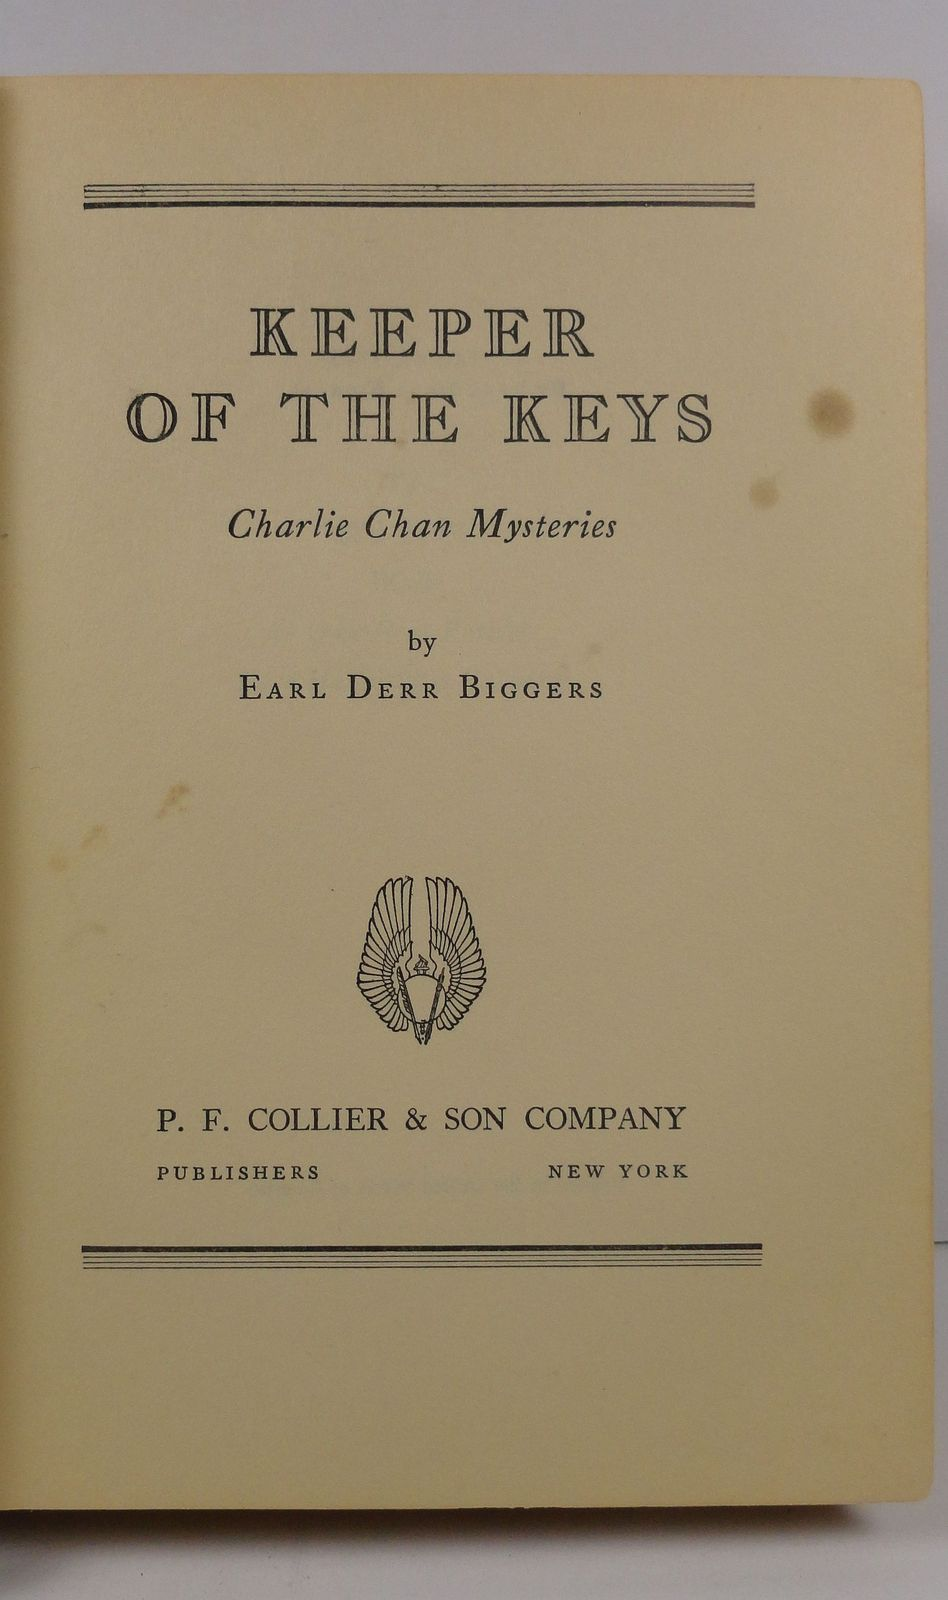 Keeper of the Keys Earl Derr Biggers Charlie Chan Mysteries